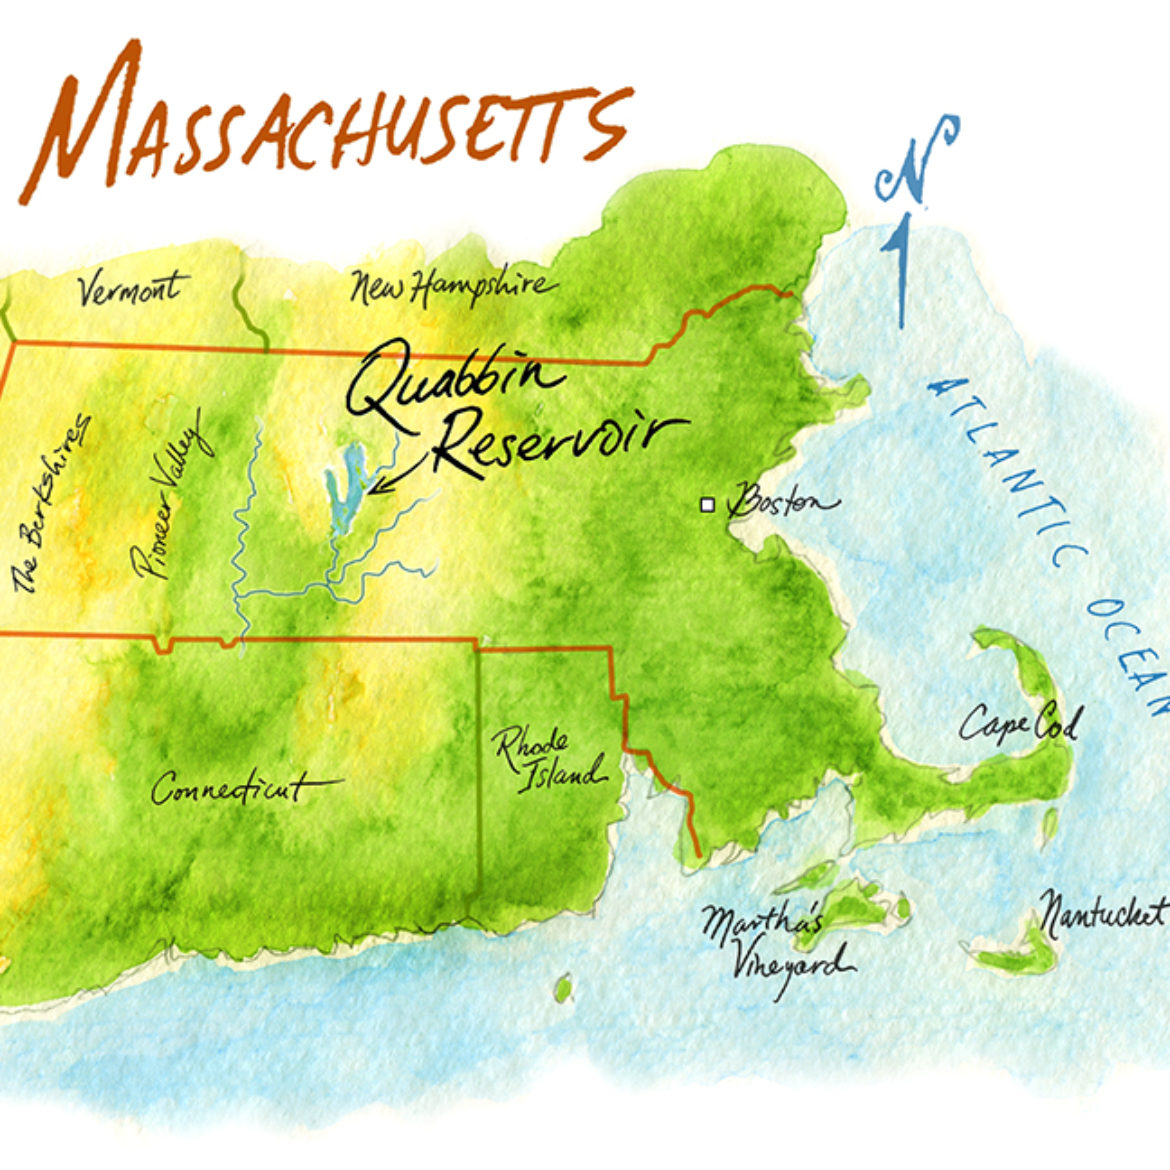 Maps! by ScottMachusetts - Maps! by Scott on